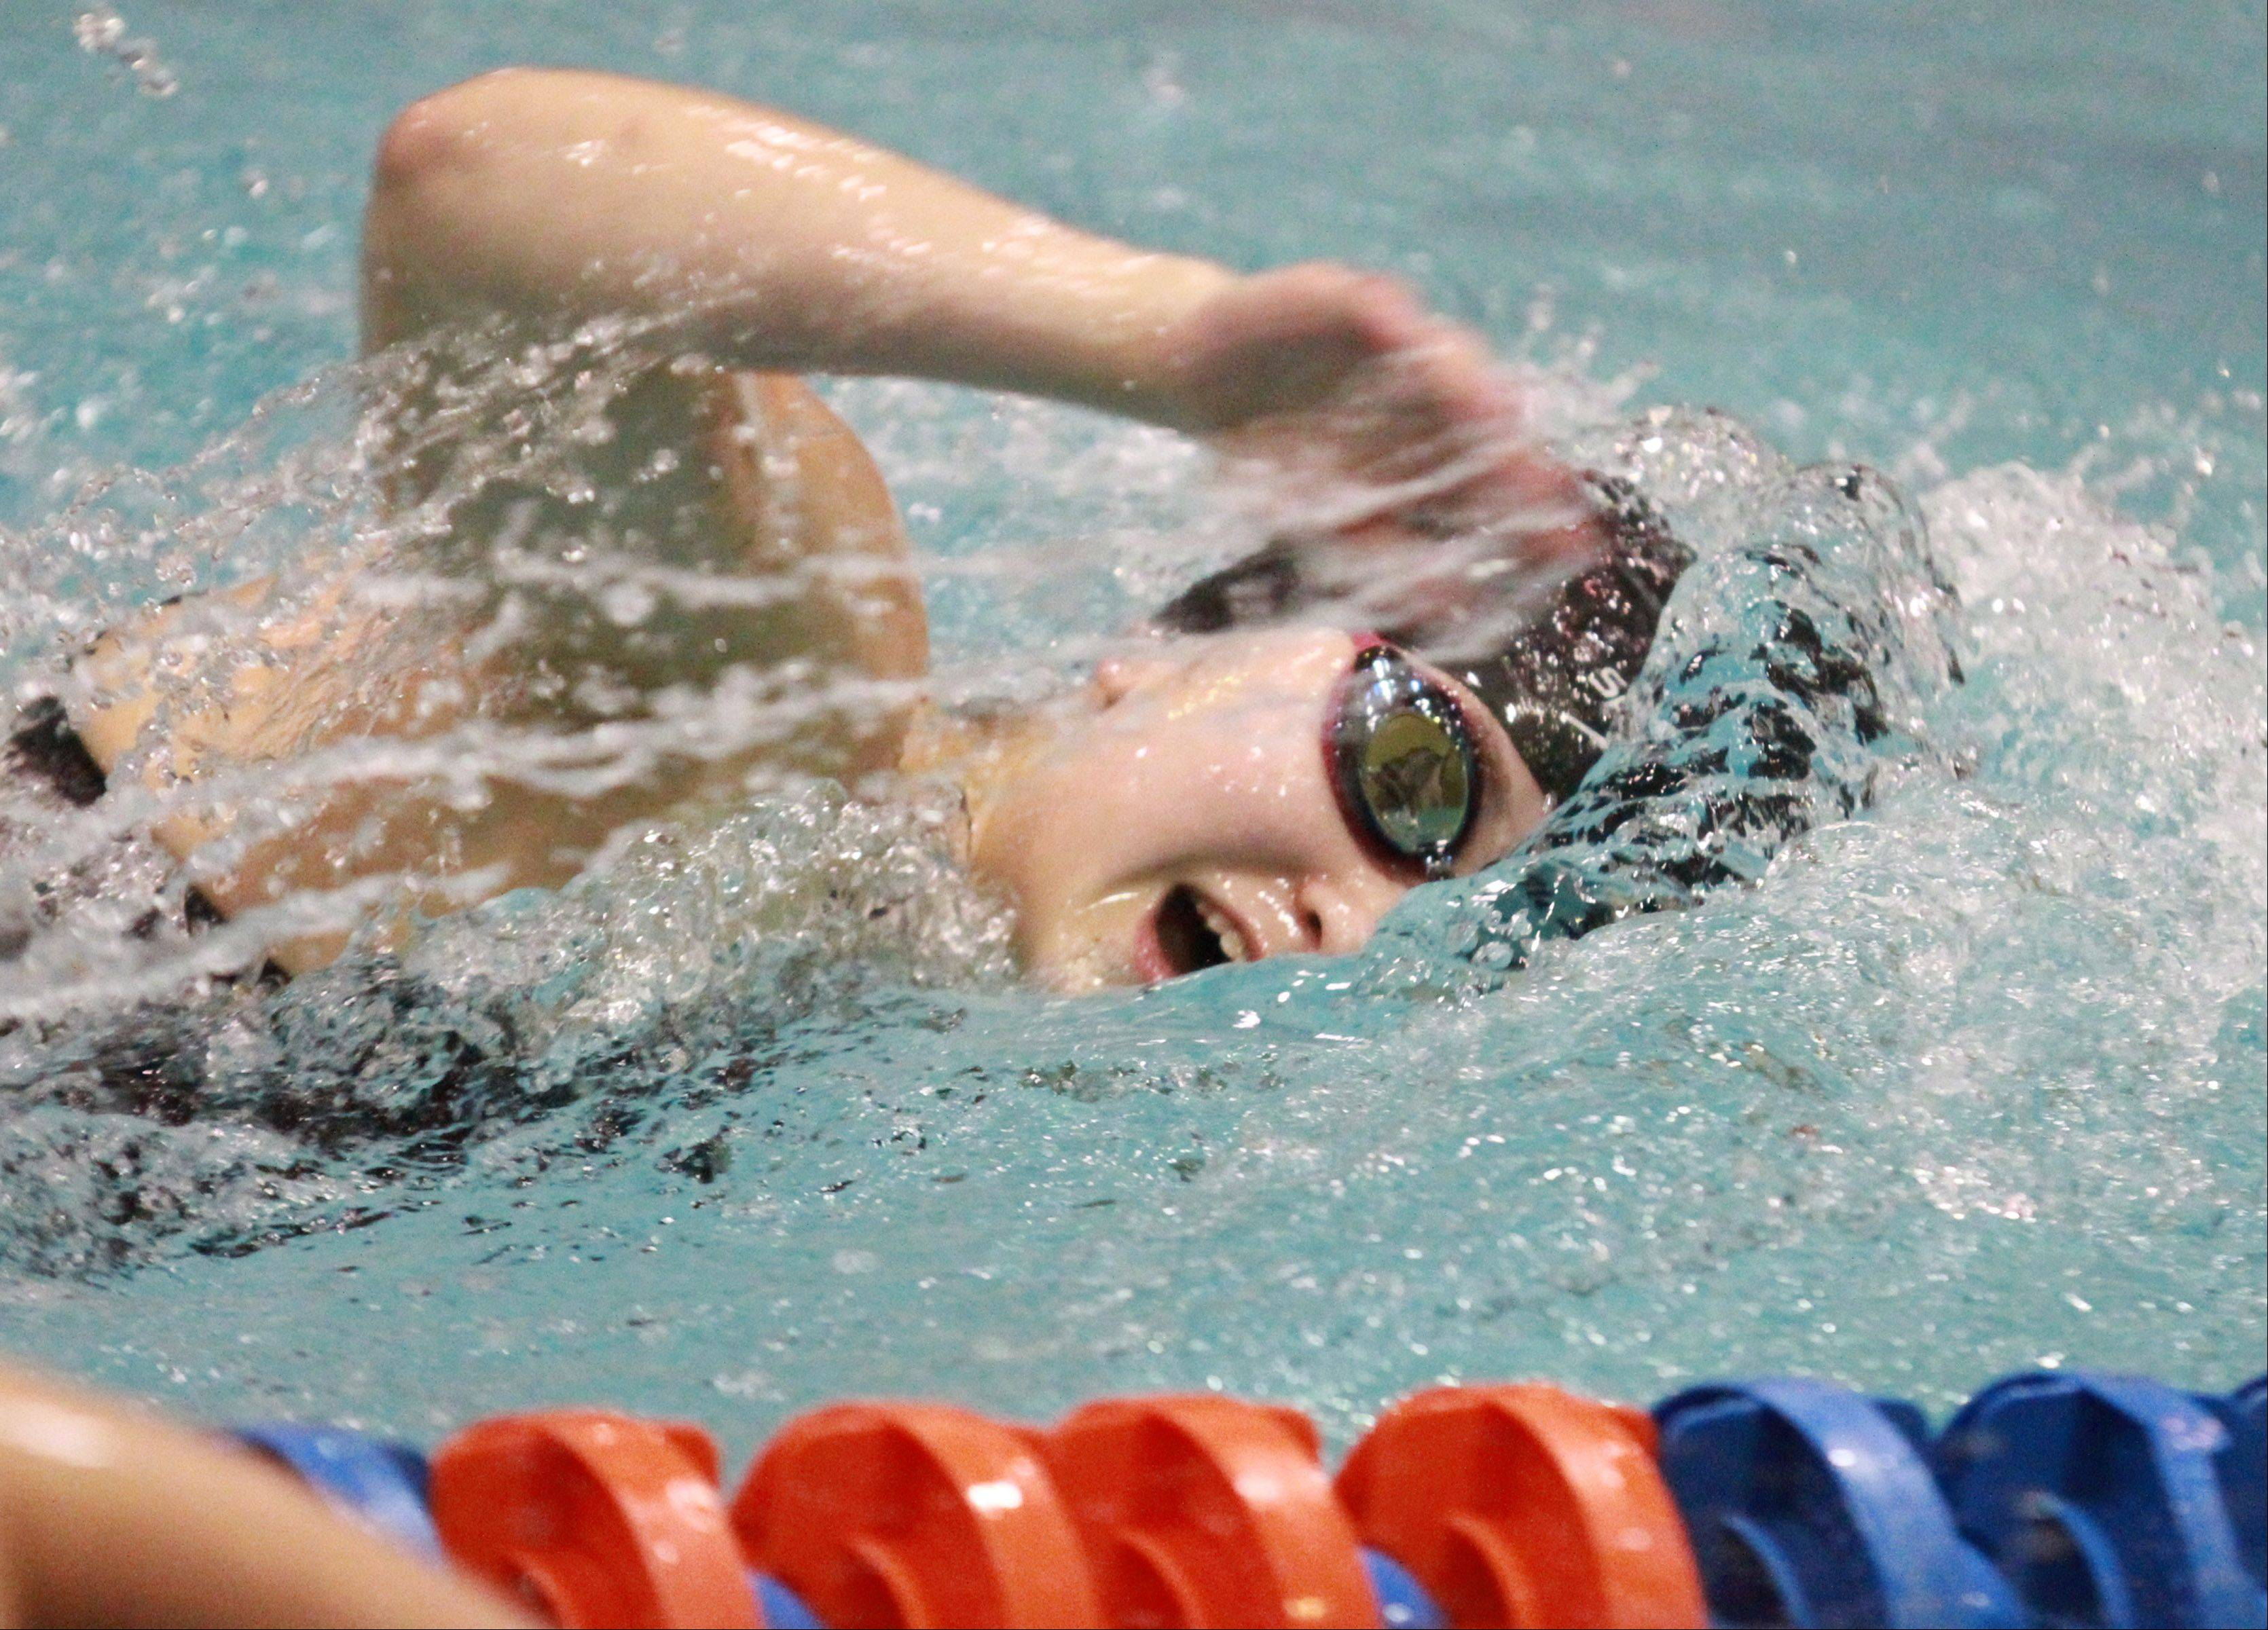 Libertyville's Morgan Dickson placed second in the 500-yard freestyle at the IHSA state championships in Evanston on Saturday.